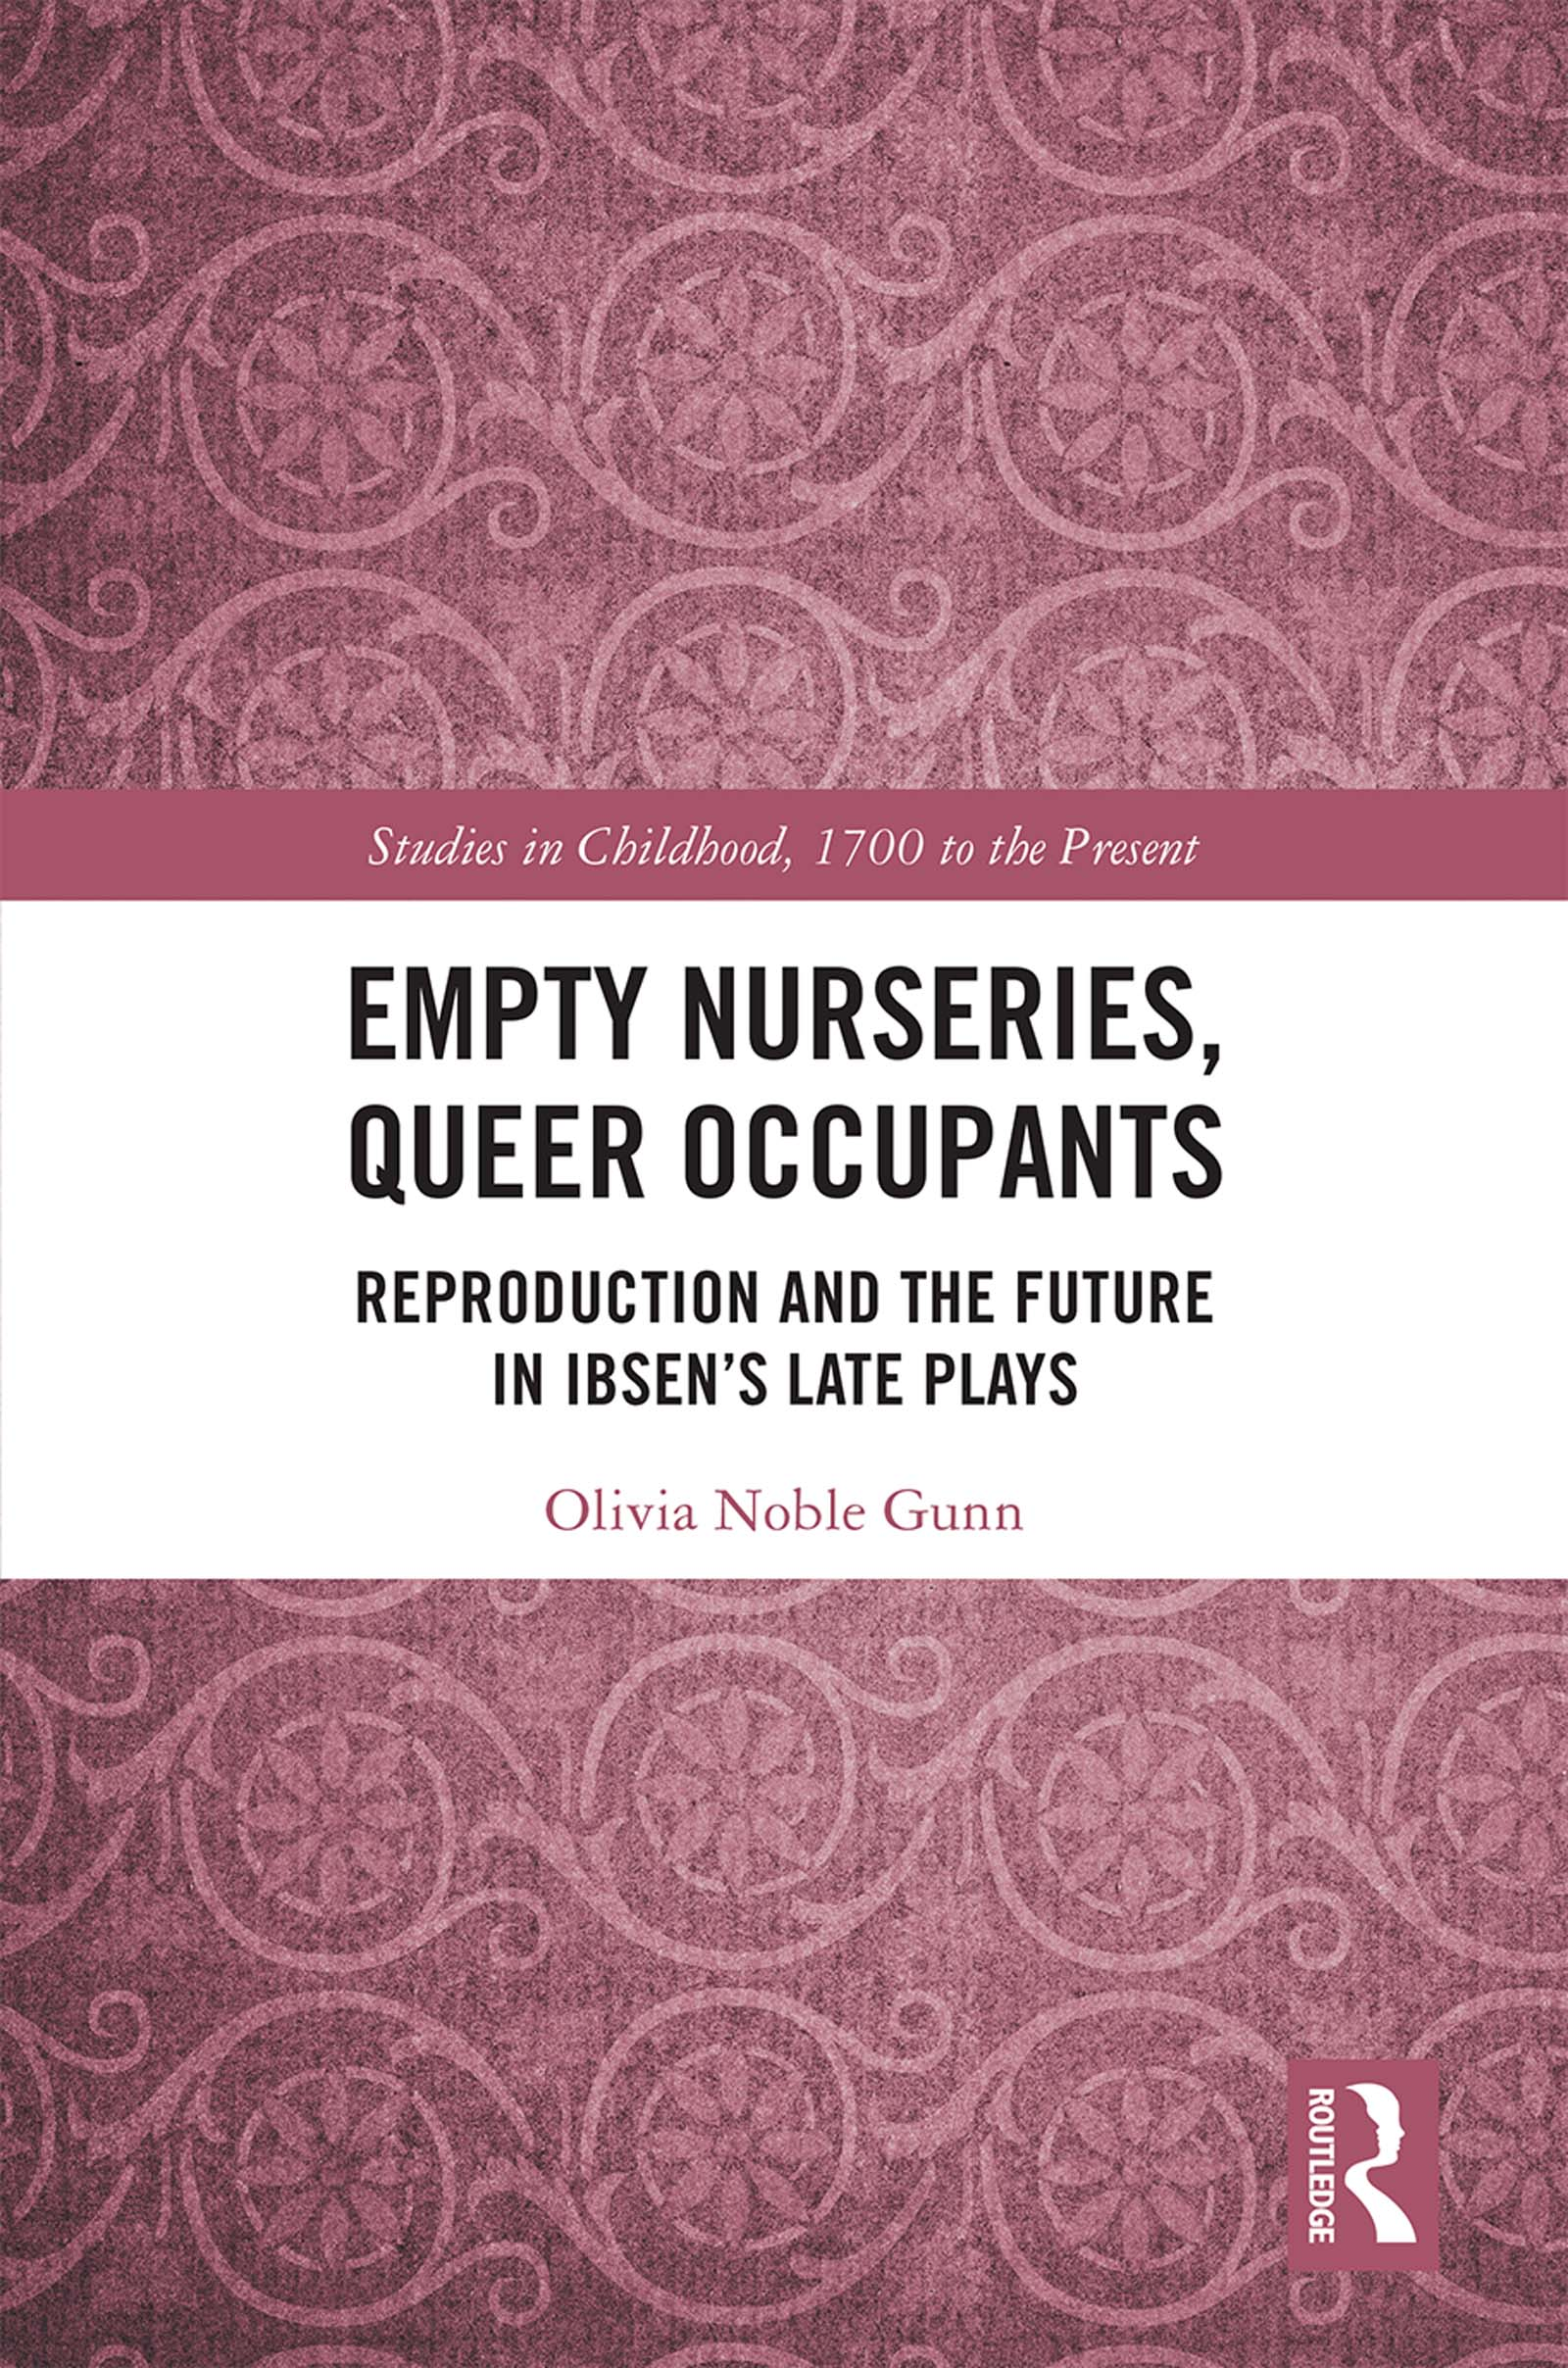 Empty Nurseries, Queer Occupants: Reproduction and the Future in Ibsen's Late Plays book cover